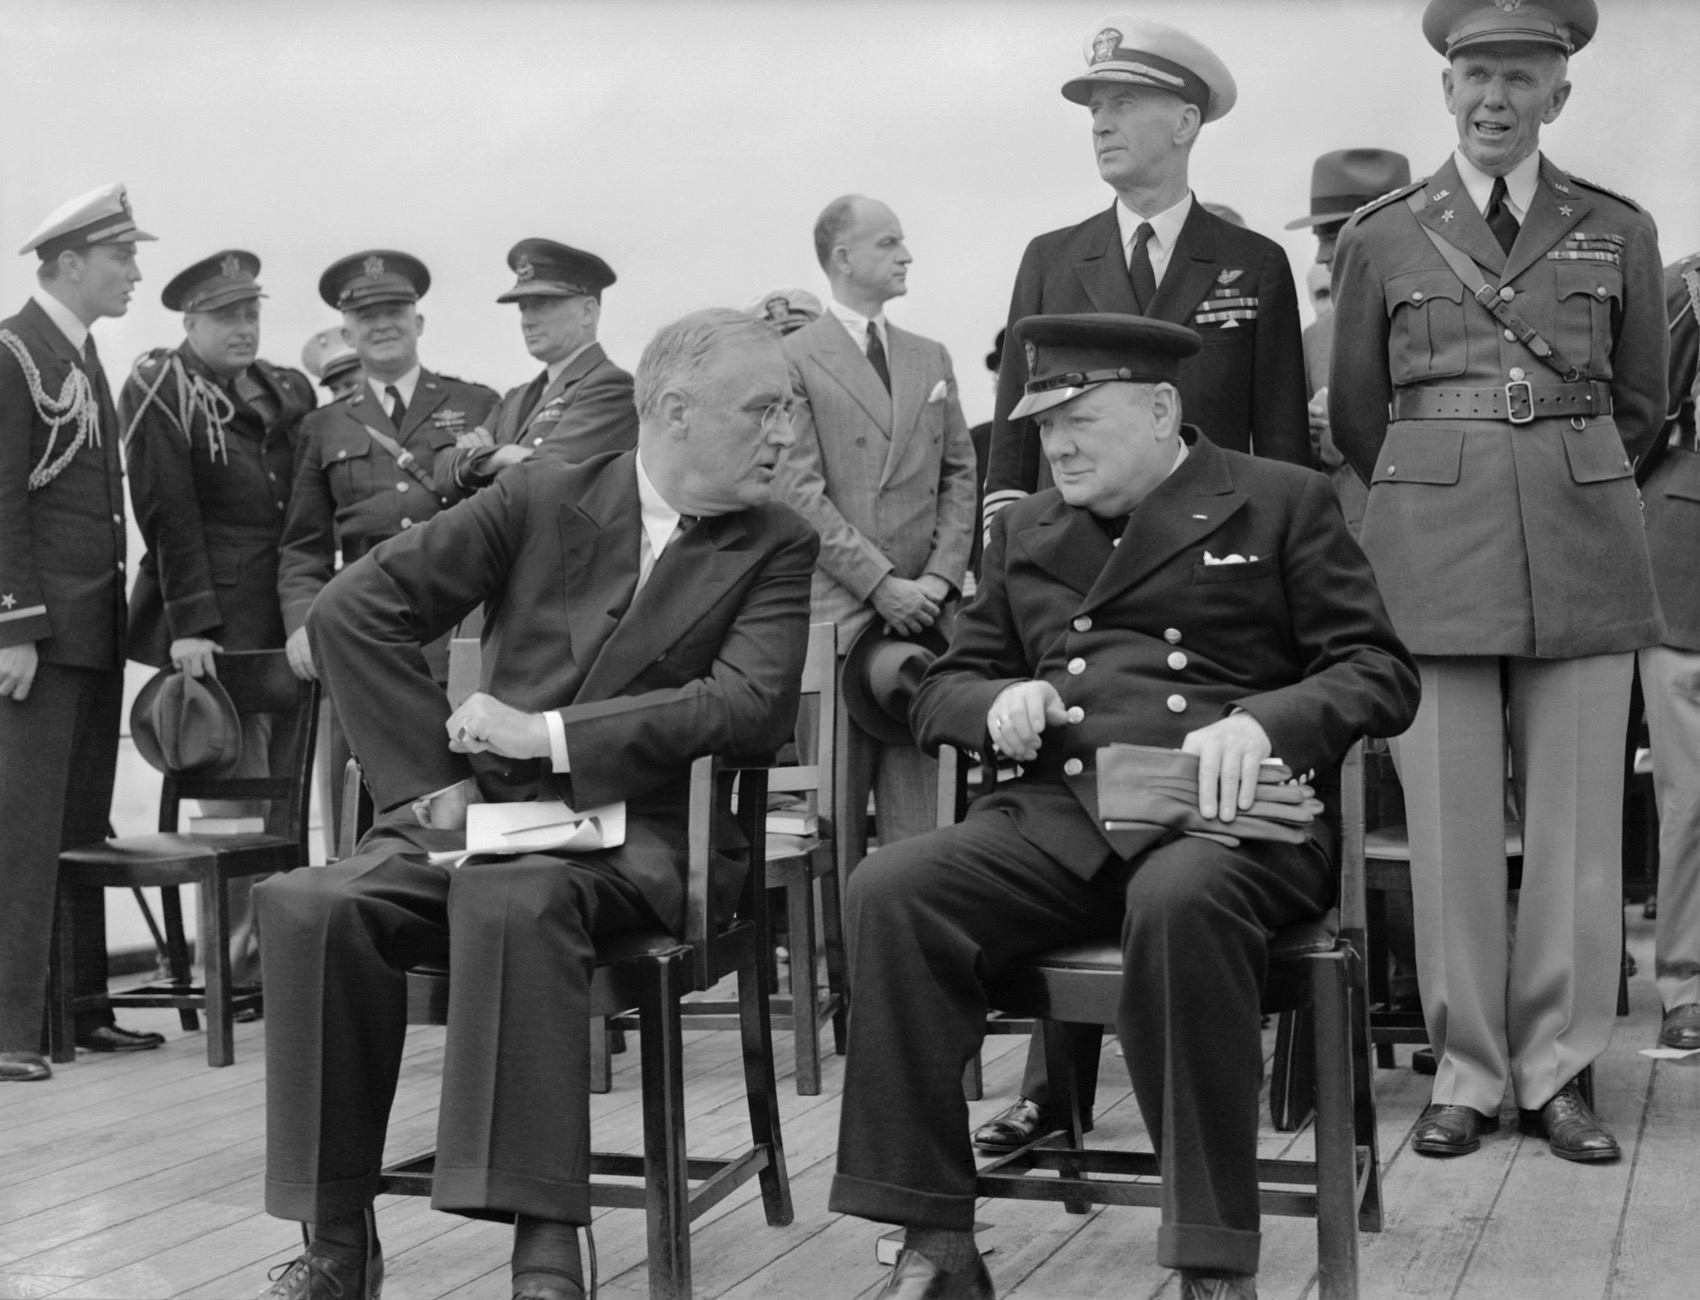 Atlantic Conference Between Prime Minister Winston Churchill And President Franklin D Roosevelt 10 August 1941, The President of the United States, Franklin D Roosevelt, and the Prime Minister of the United Kingdom, Winston Churchill are seated on the Quarterdeck of HMS PRINCE OF WALES. They are chatting following a Sunday service, during the Atlantic Conference, 10 August 1941. Immediately behind them are Admiral E J King, USN and General Marshall, US Army. The President's sons, Ensign Franklin Roosevelt Jr USNR and Captain Elliot Roosevelt USAAF, along with General Arnold, USAAF, Air Chief Marshal Sir Wilfred Freeman RAF are conversing to the left of the image, 10 August 1941. (Photo by Lt. L C Priest/ IWM via Getty Images)